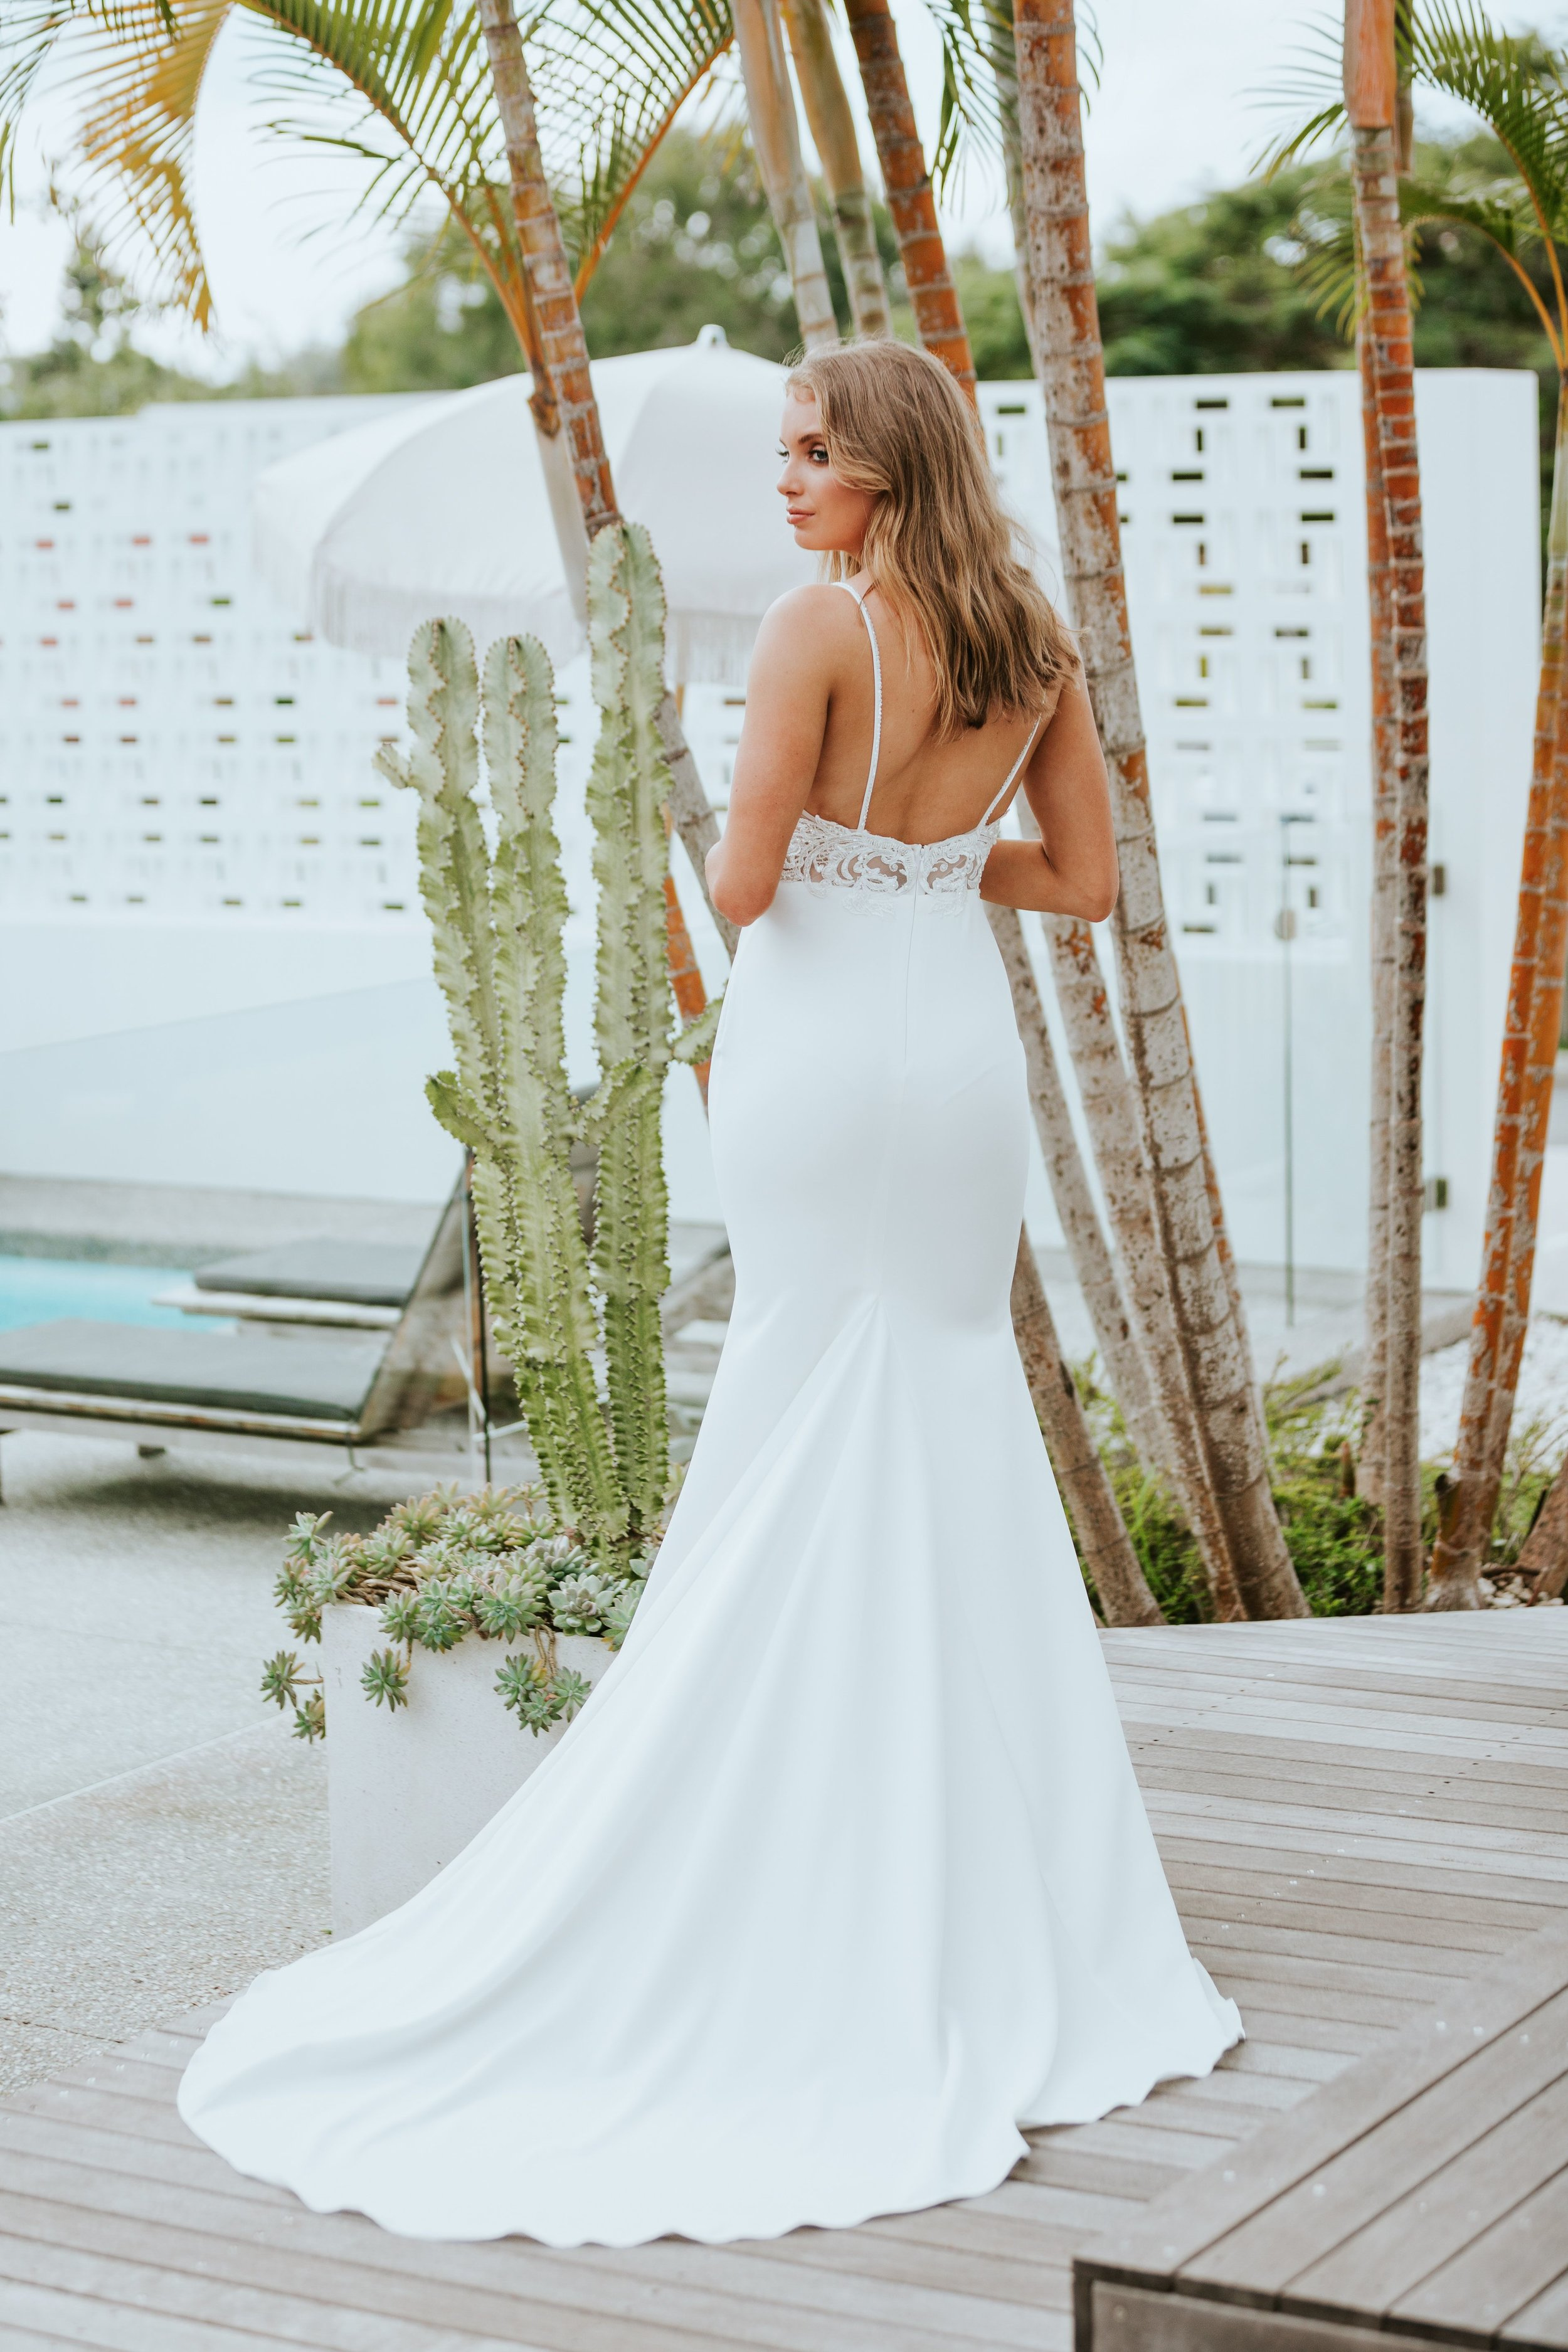 The CAPRI gown was made using a sparkling sequin and lace applique, hand-sewn onto the bodice for a unique luxe look. CAPRI is a divine gown that highlights your natural curves, hugging the hips with a soft, smooth matte French crepe.